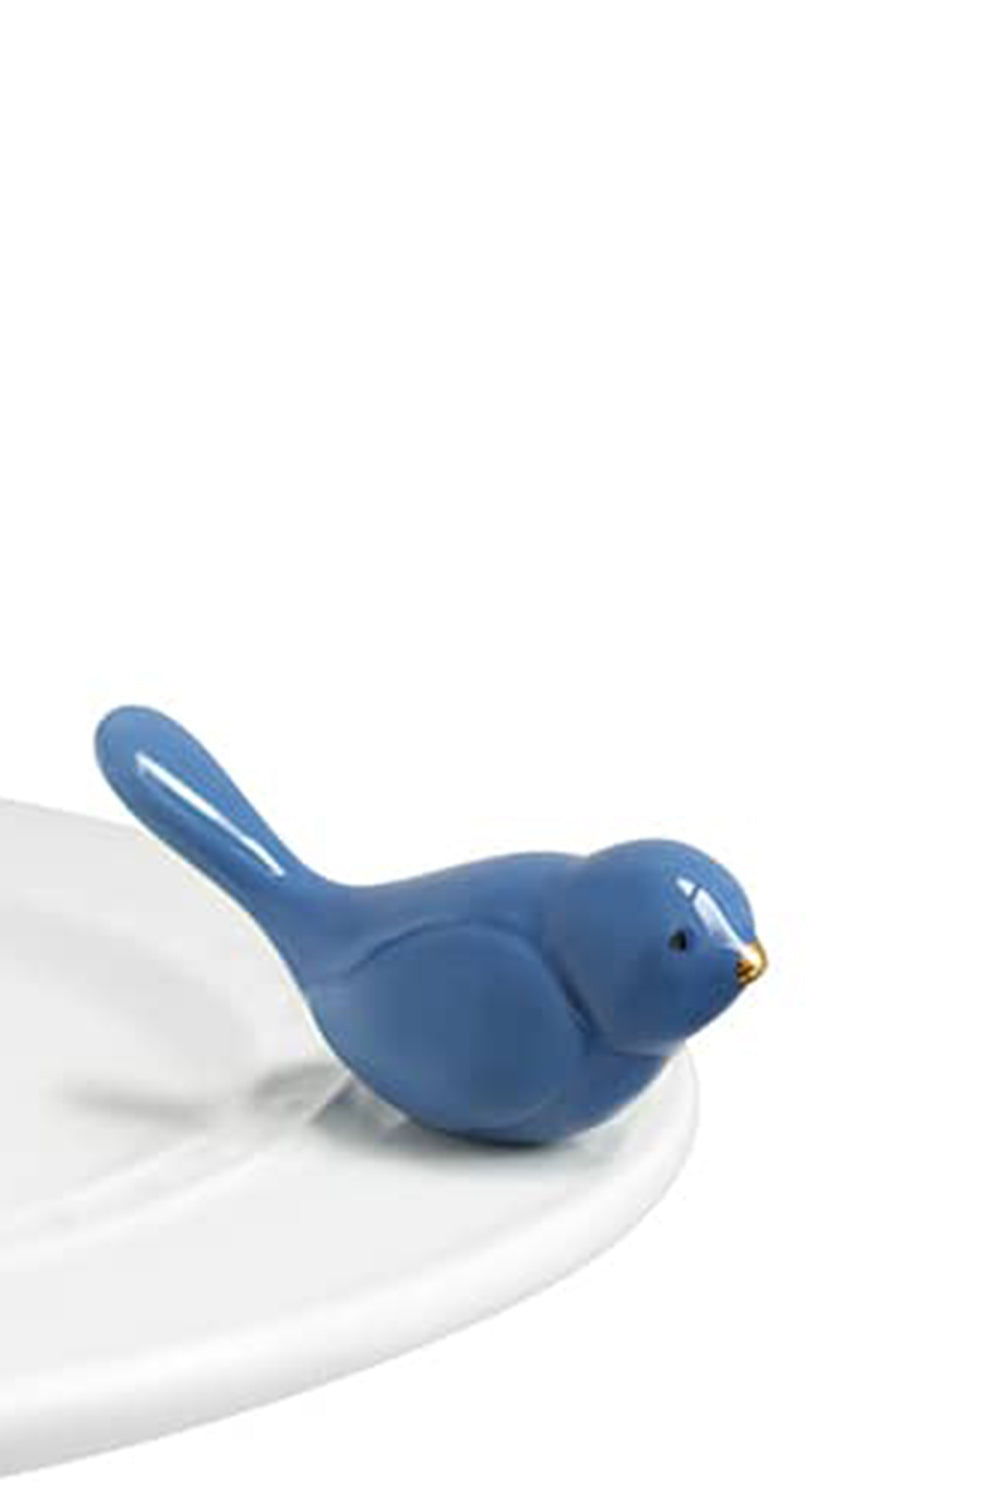 Nora Fleming Mini Attachment - Blue Bird of Happiness